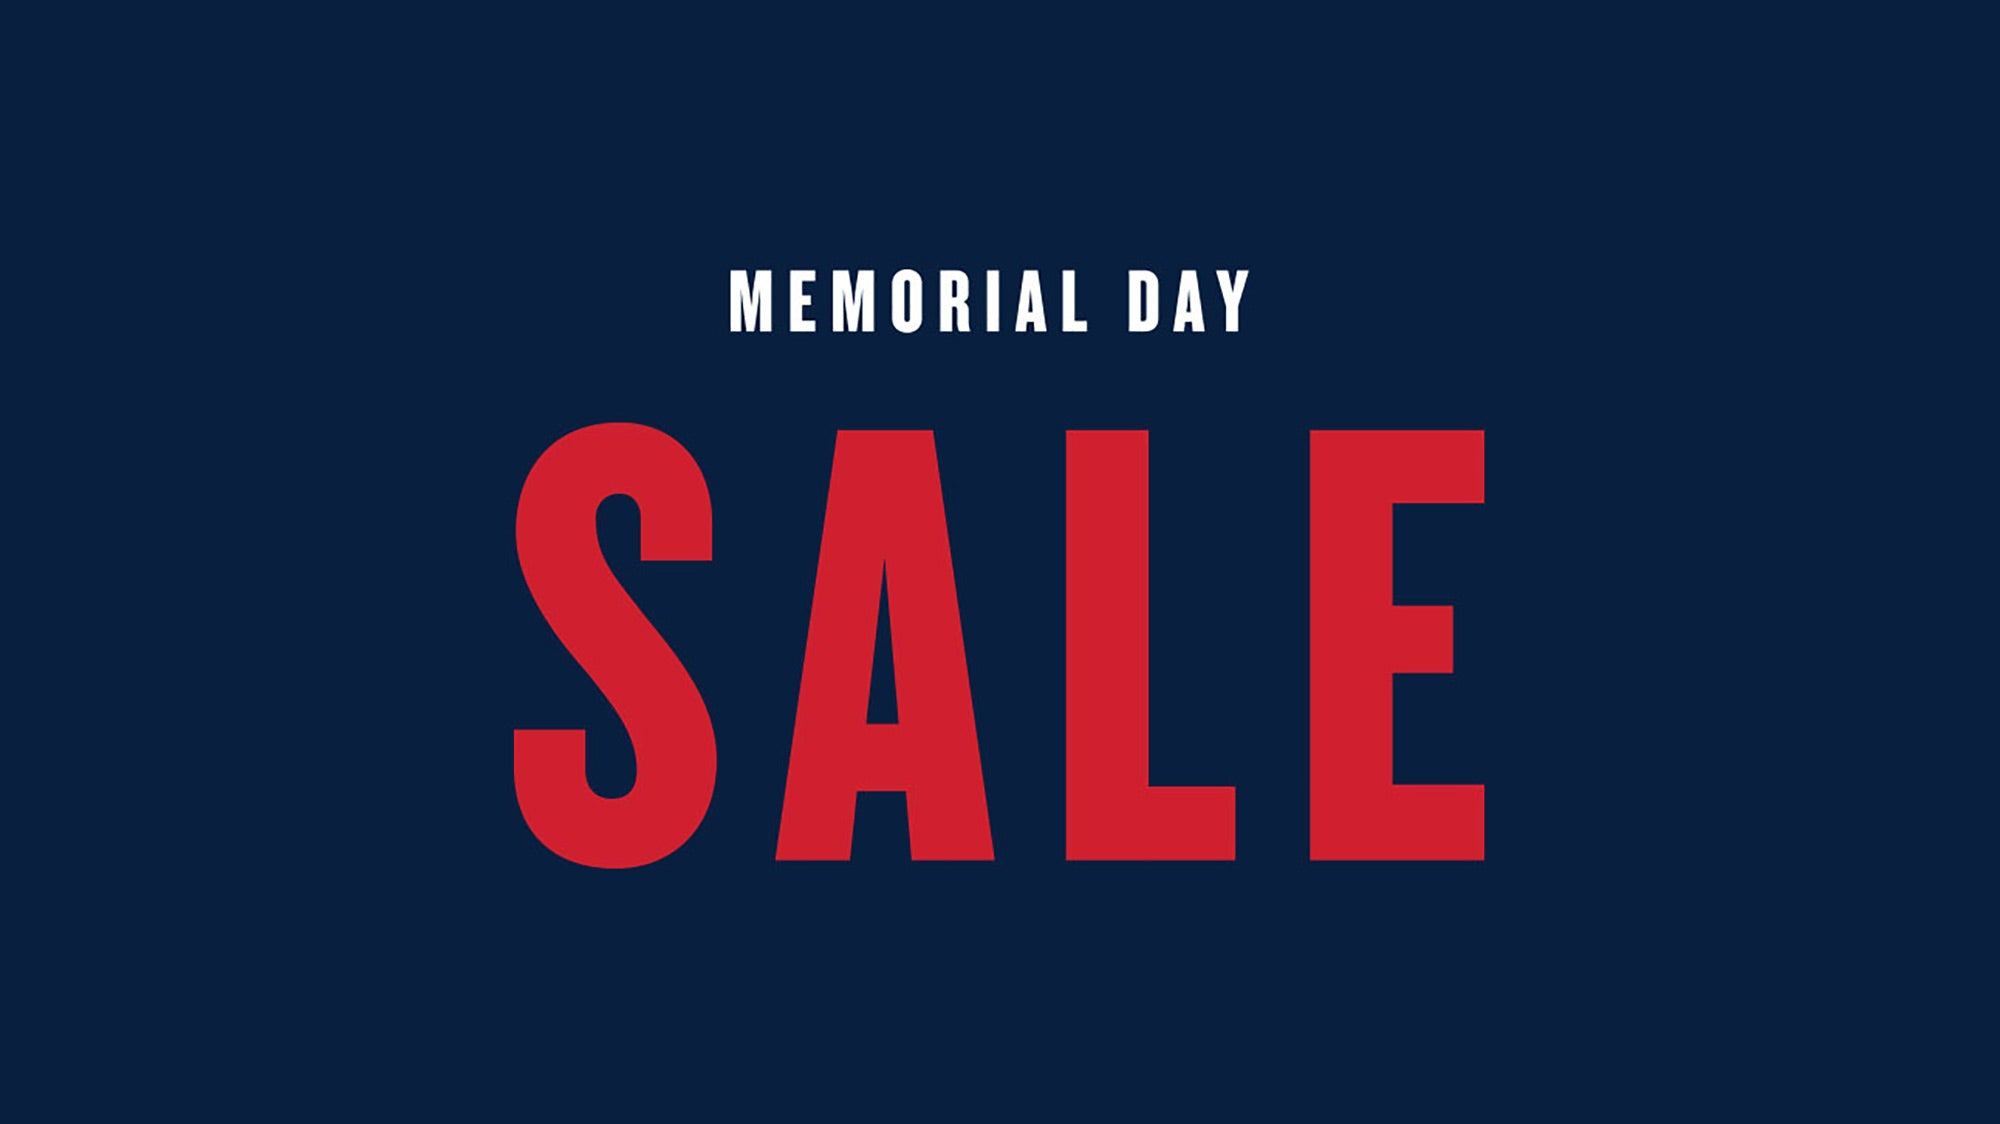 Trek Memorial Day Sale at Trek Bicycle Tustin, Orange County Bike Shop